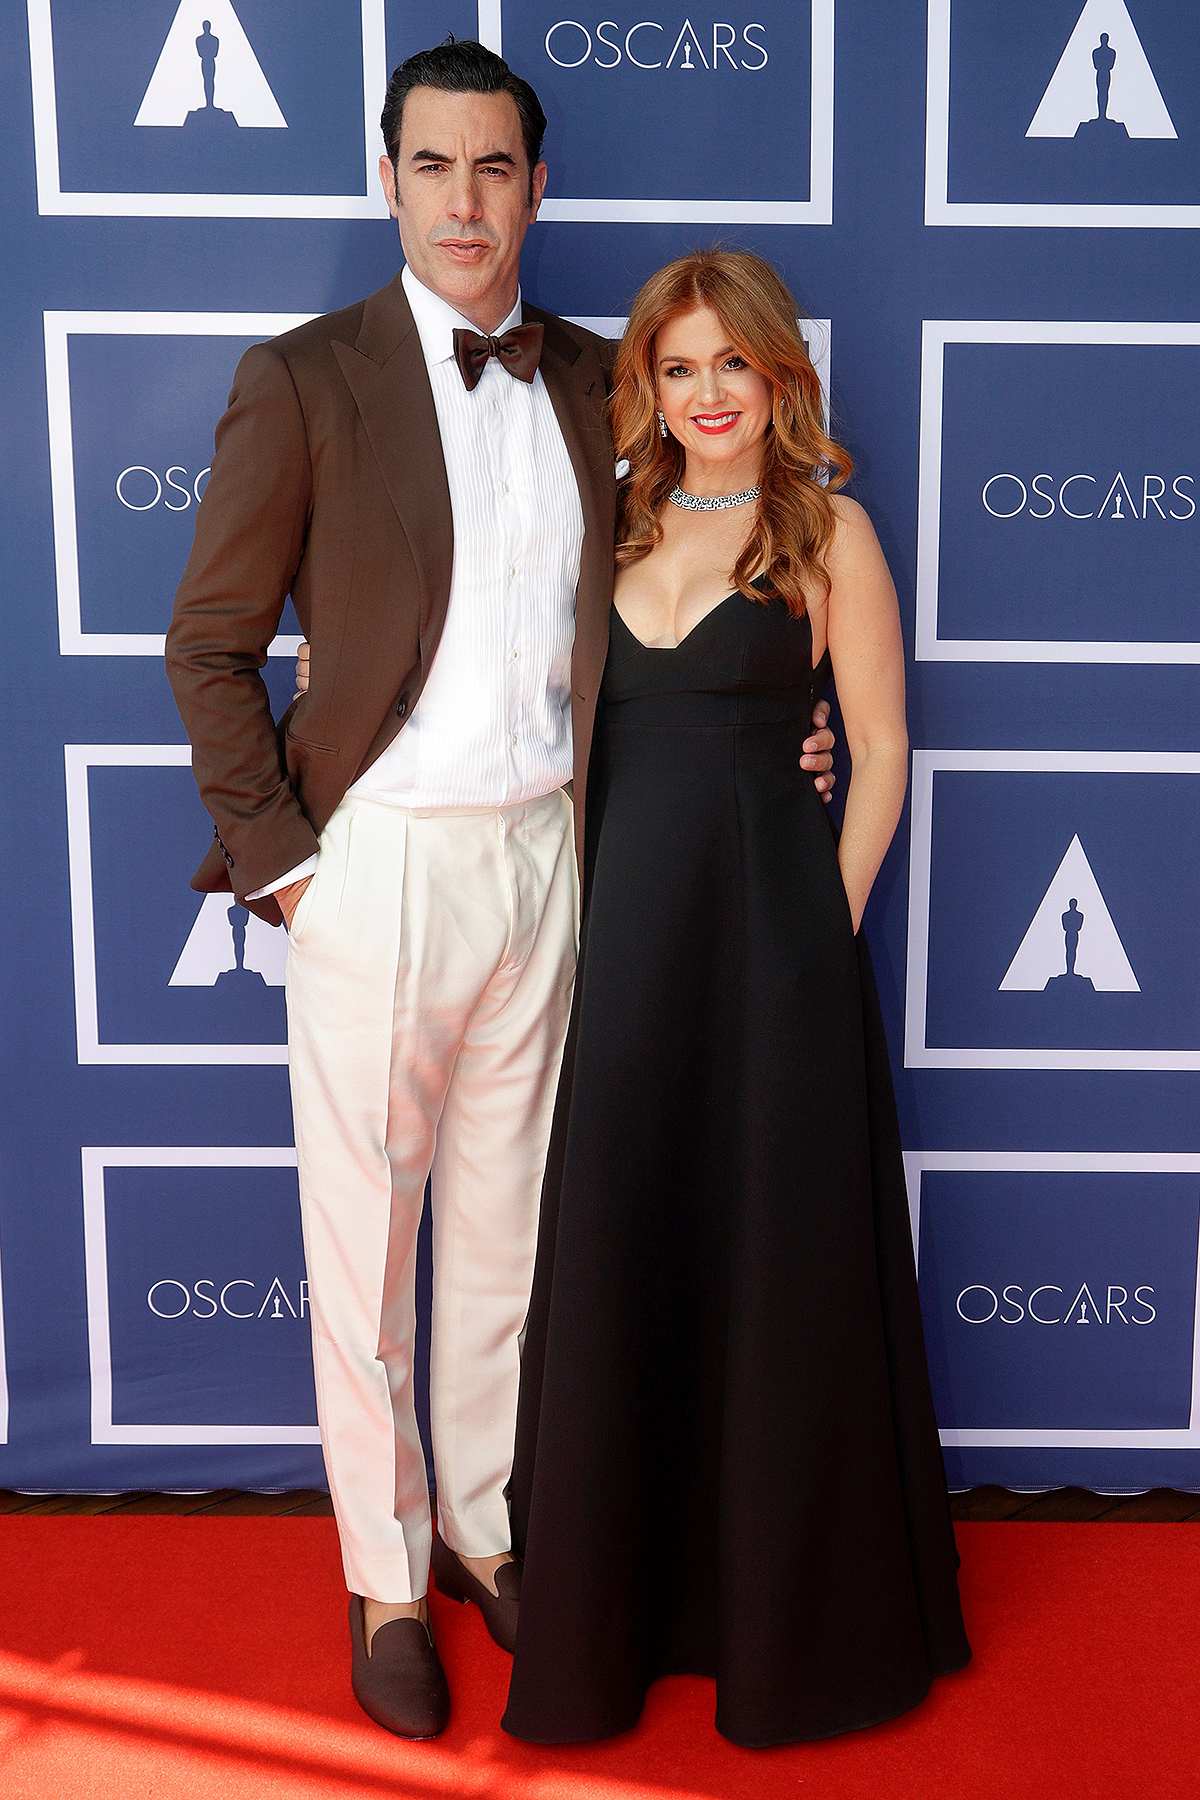 Sacha Baron Cohen and Isla Fisher arrive to attend a screening of the Oscars 93rd Annual Academy Awards